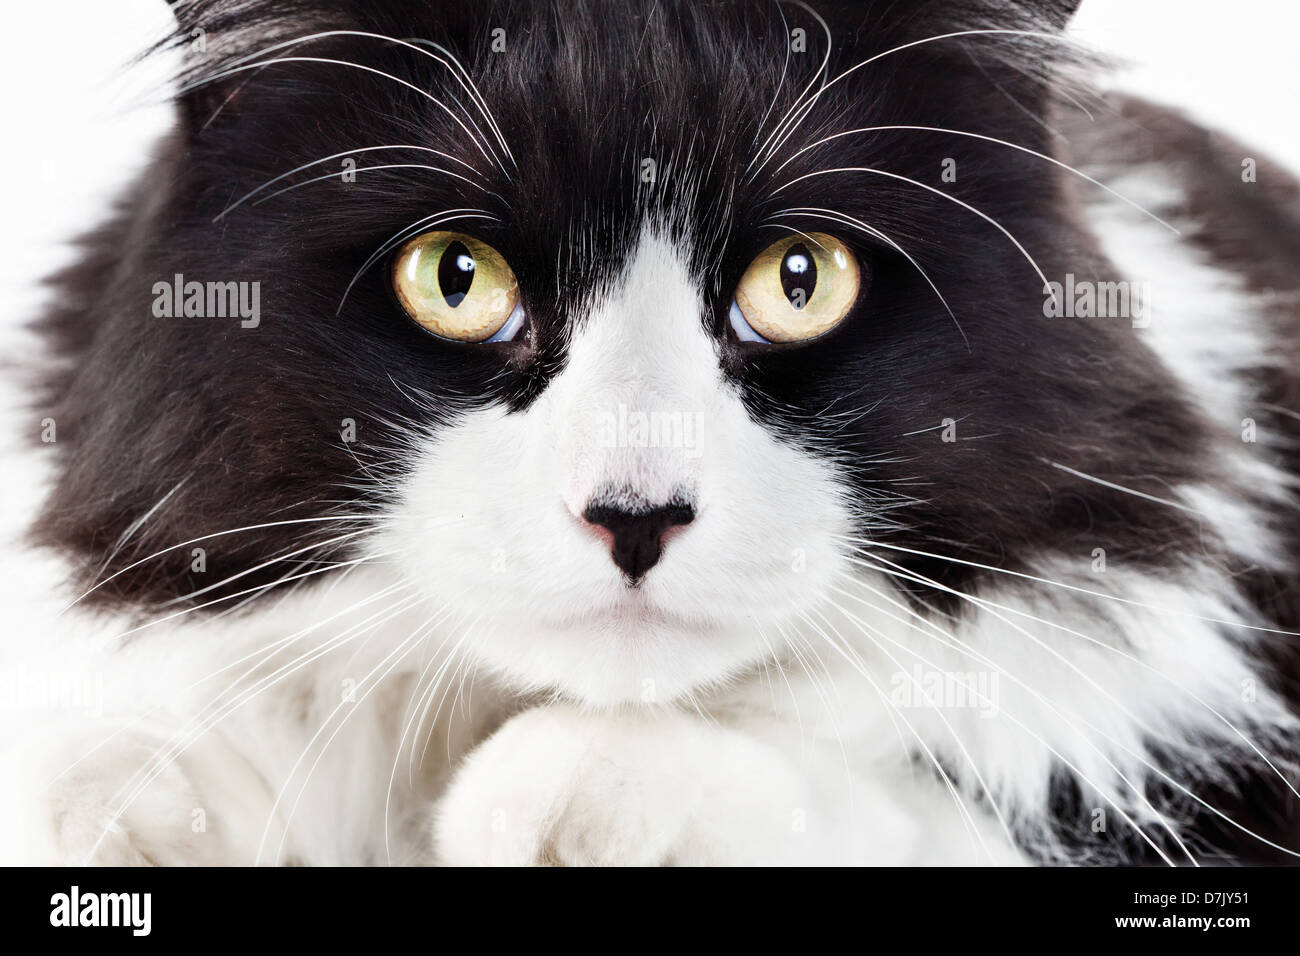 close up intense portrait of fluffly tuxedo cat staring directly and intently  to camera Stock Photo